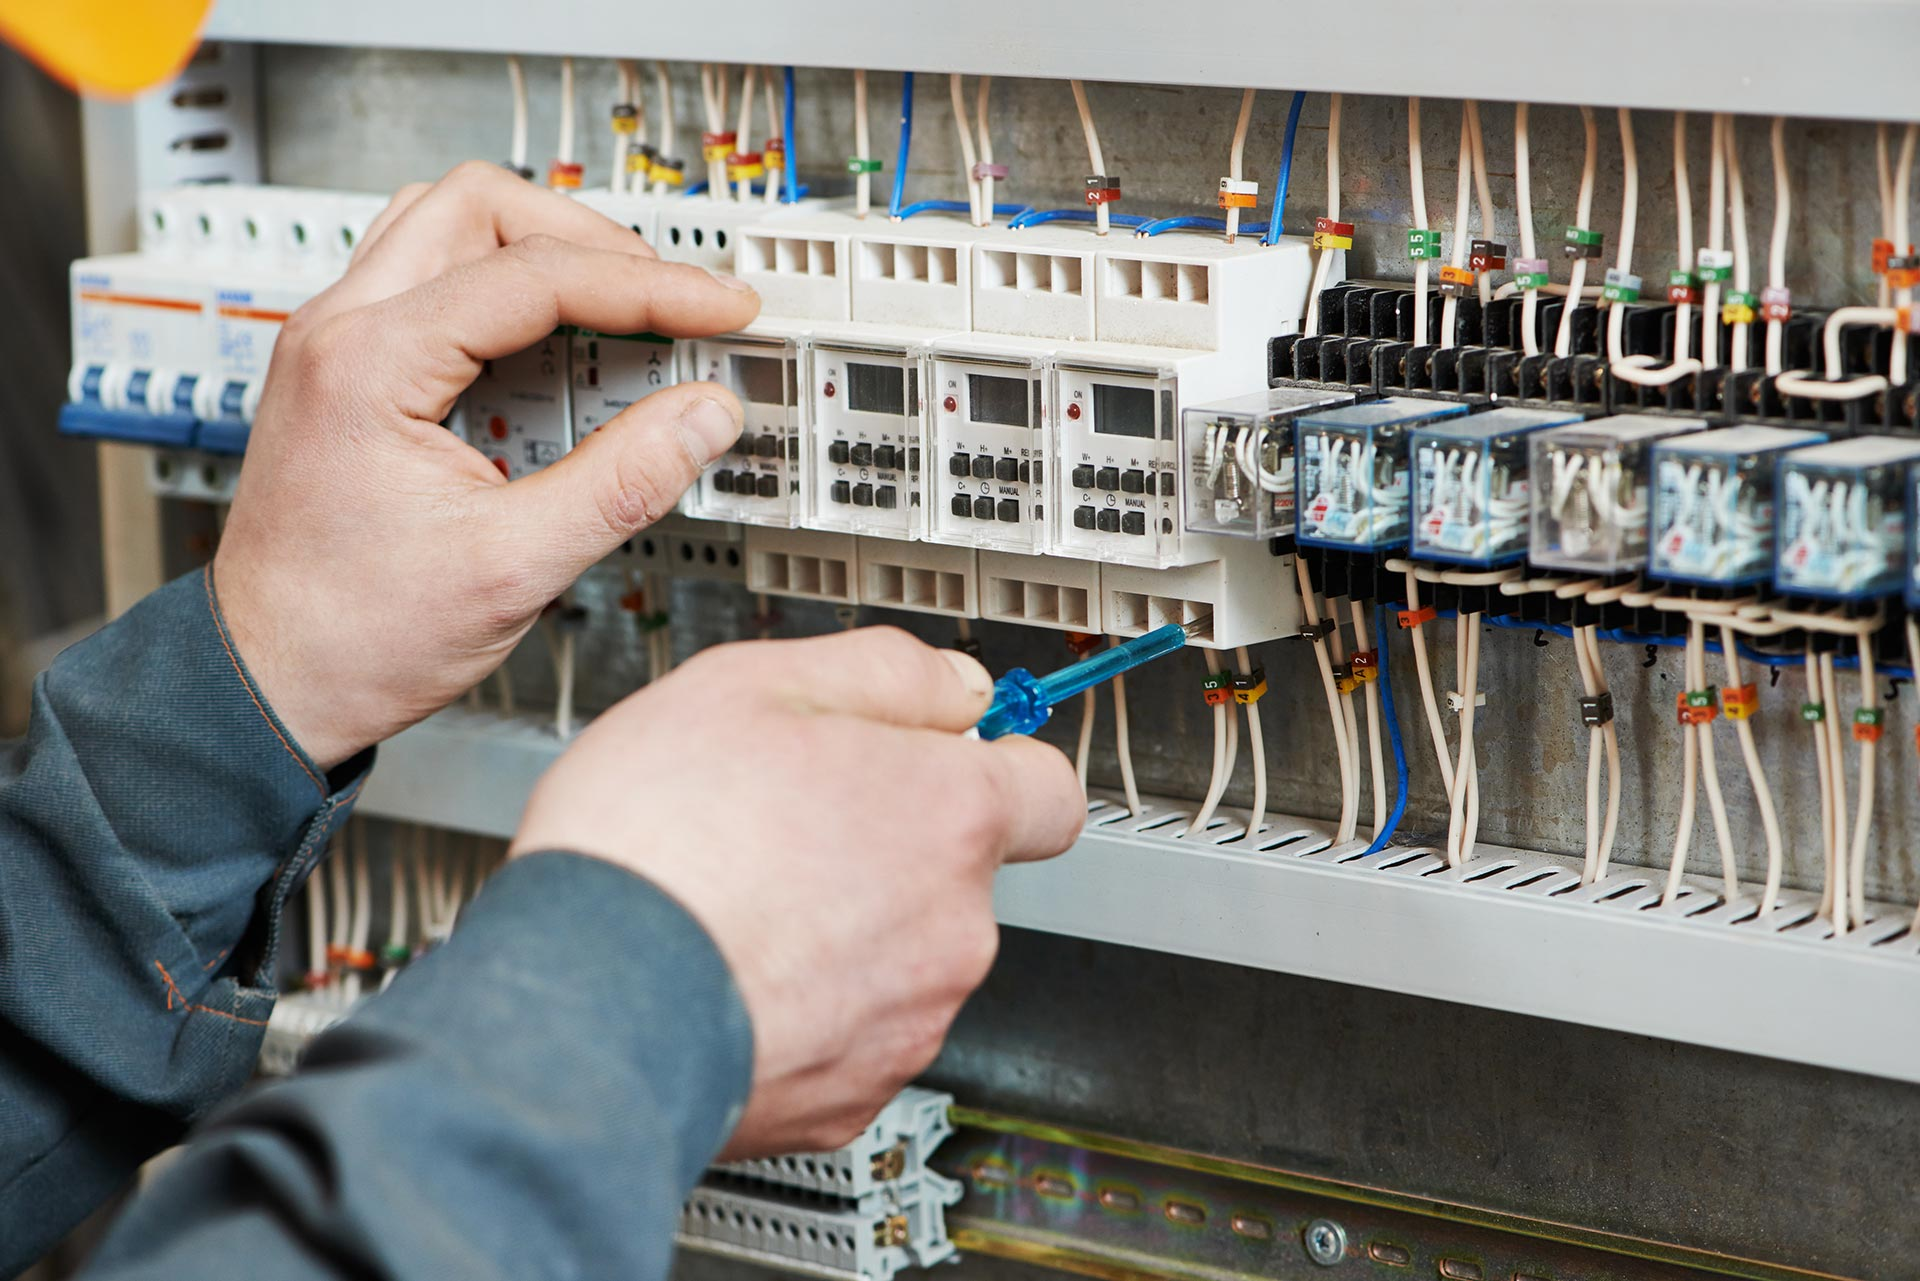 Contact GetATech for professional Residential & Commercial Electronics Service